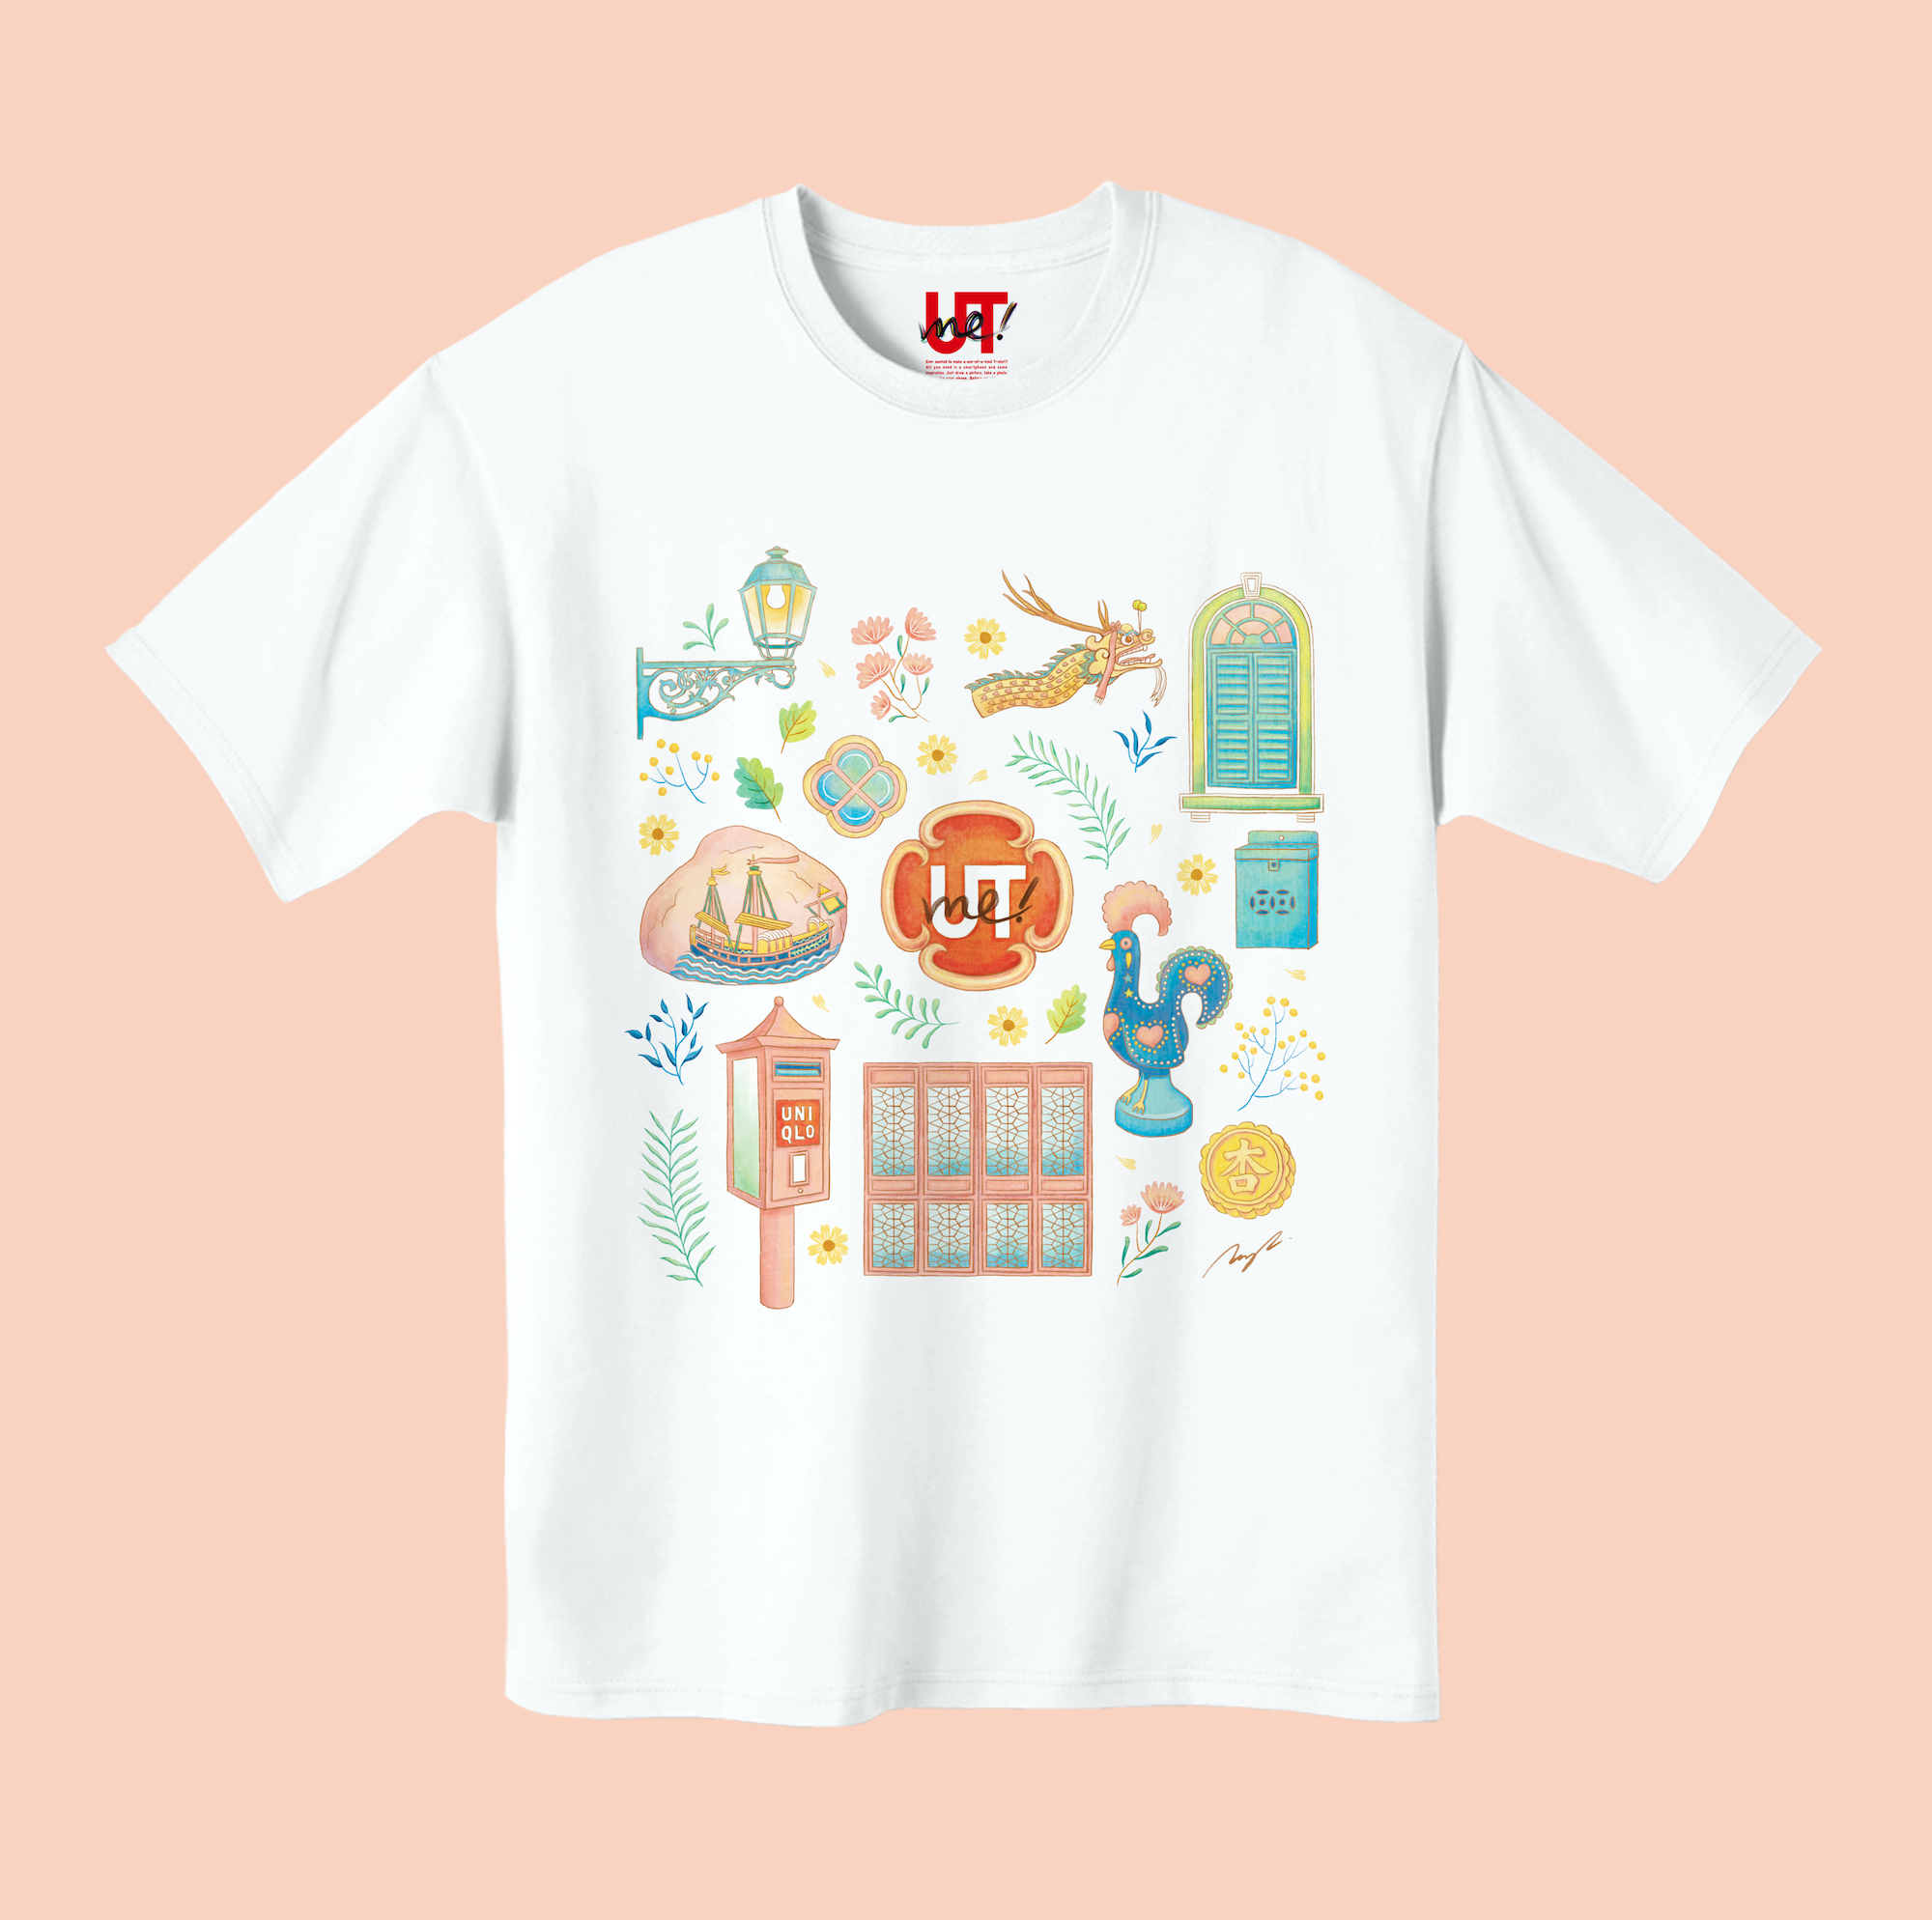 T-shirt design for UNIQLO UTme by Tramy Lui, Tick Design